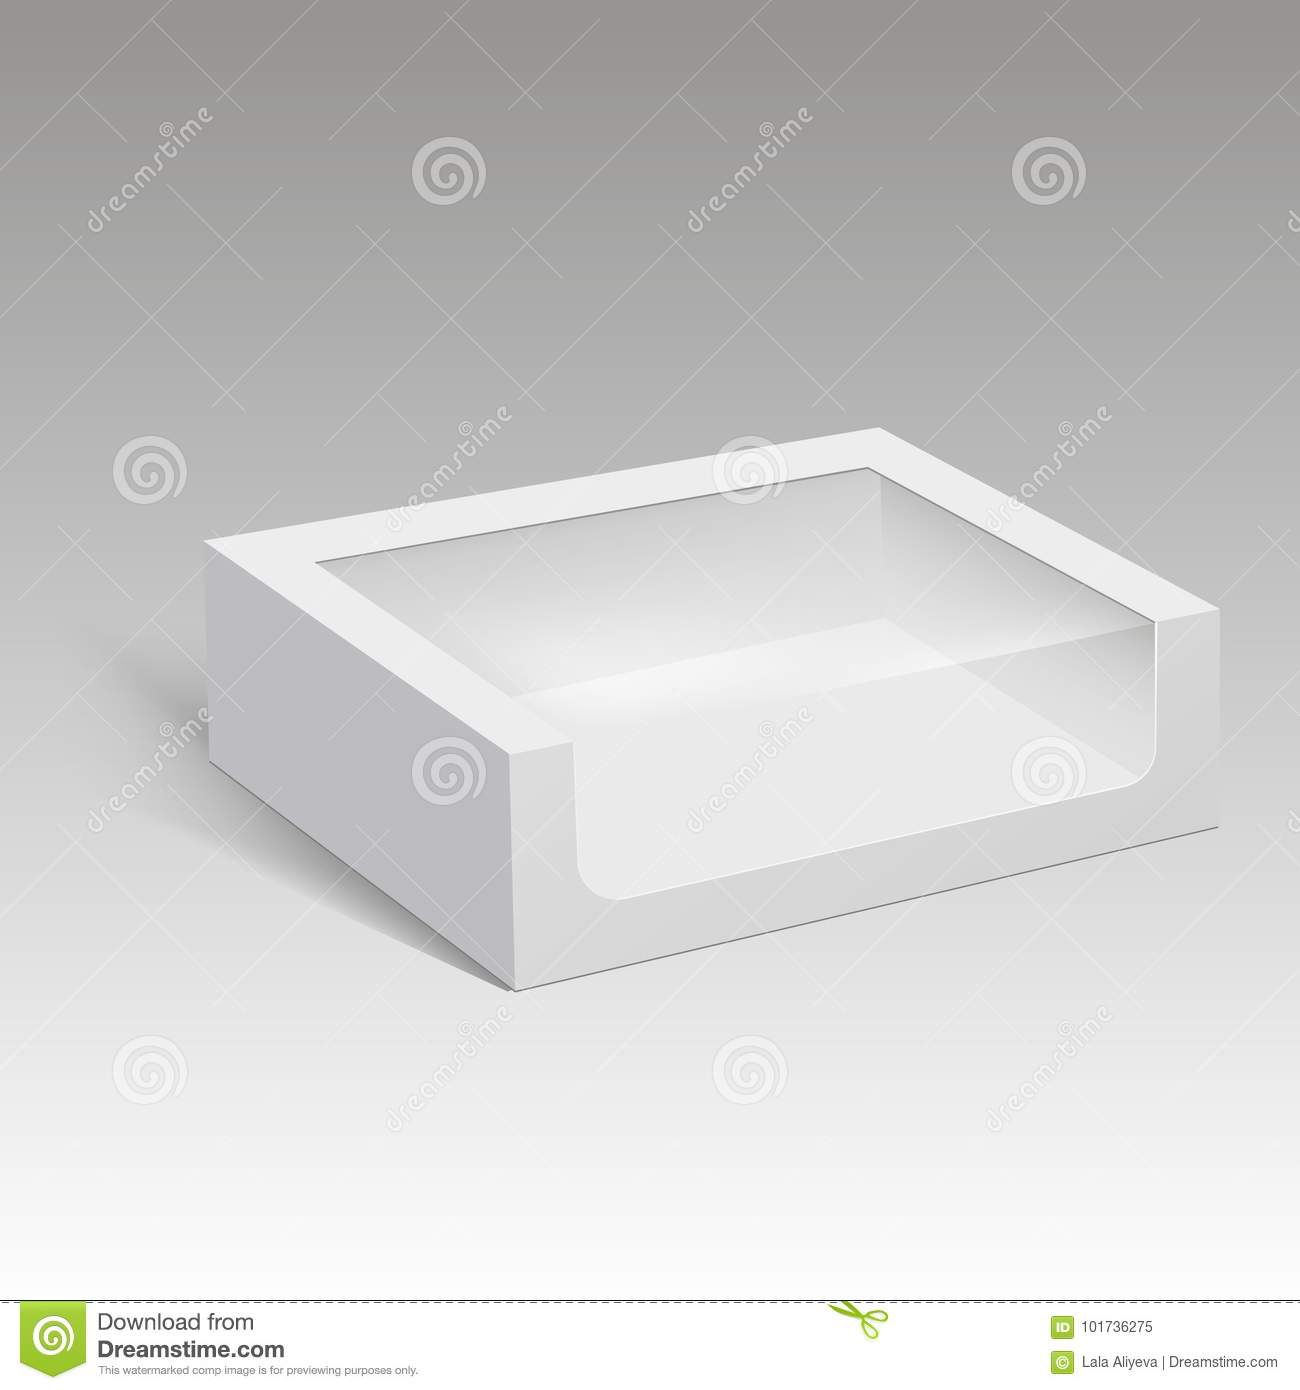 Blank paper box packaging for sandwich, food, gift or other products with plastic window. Vector illustration.